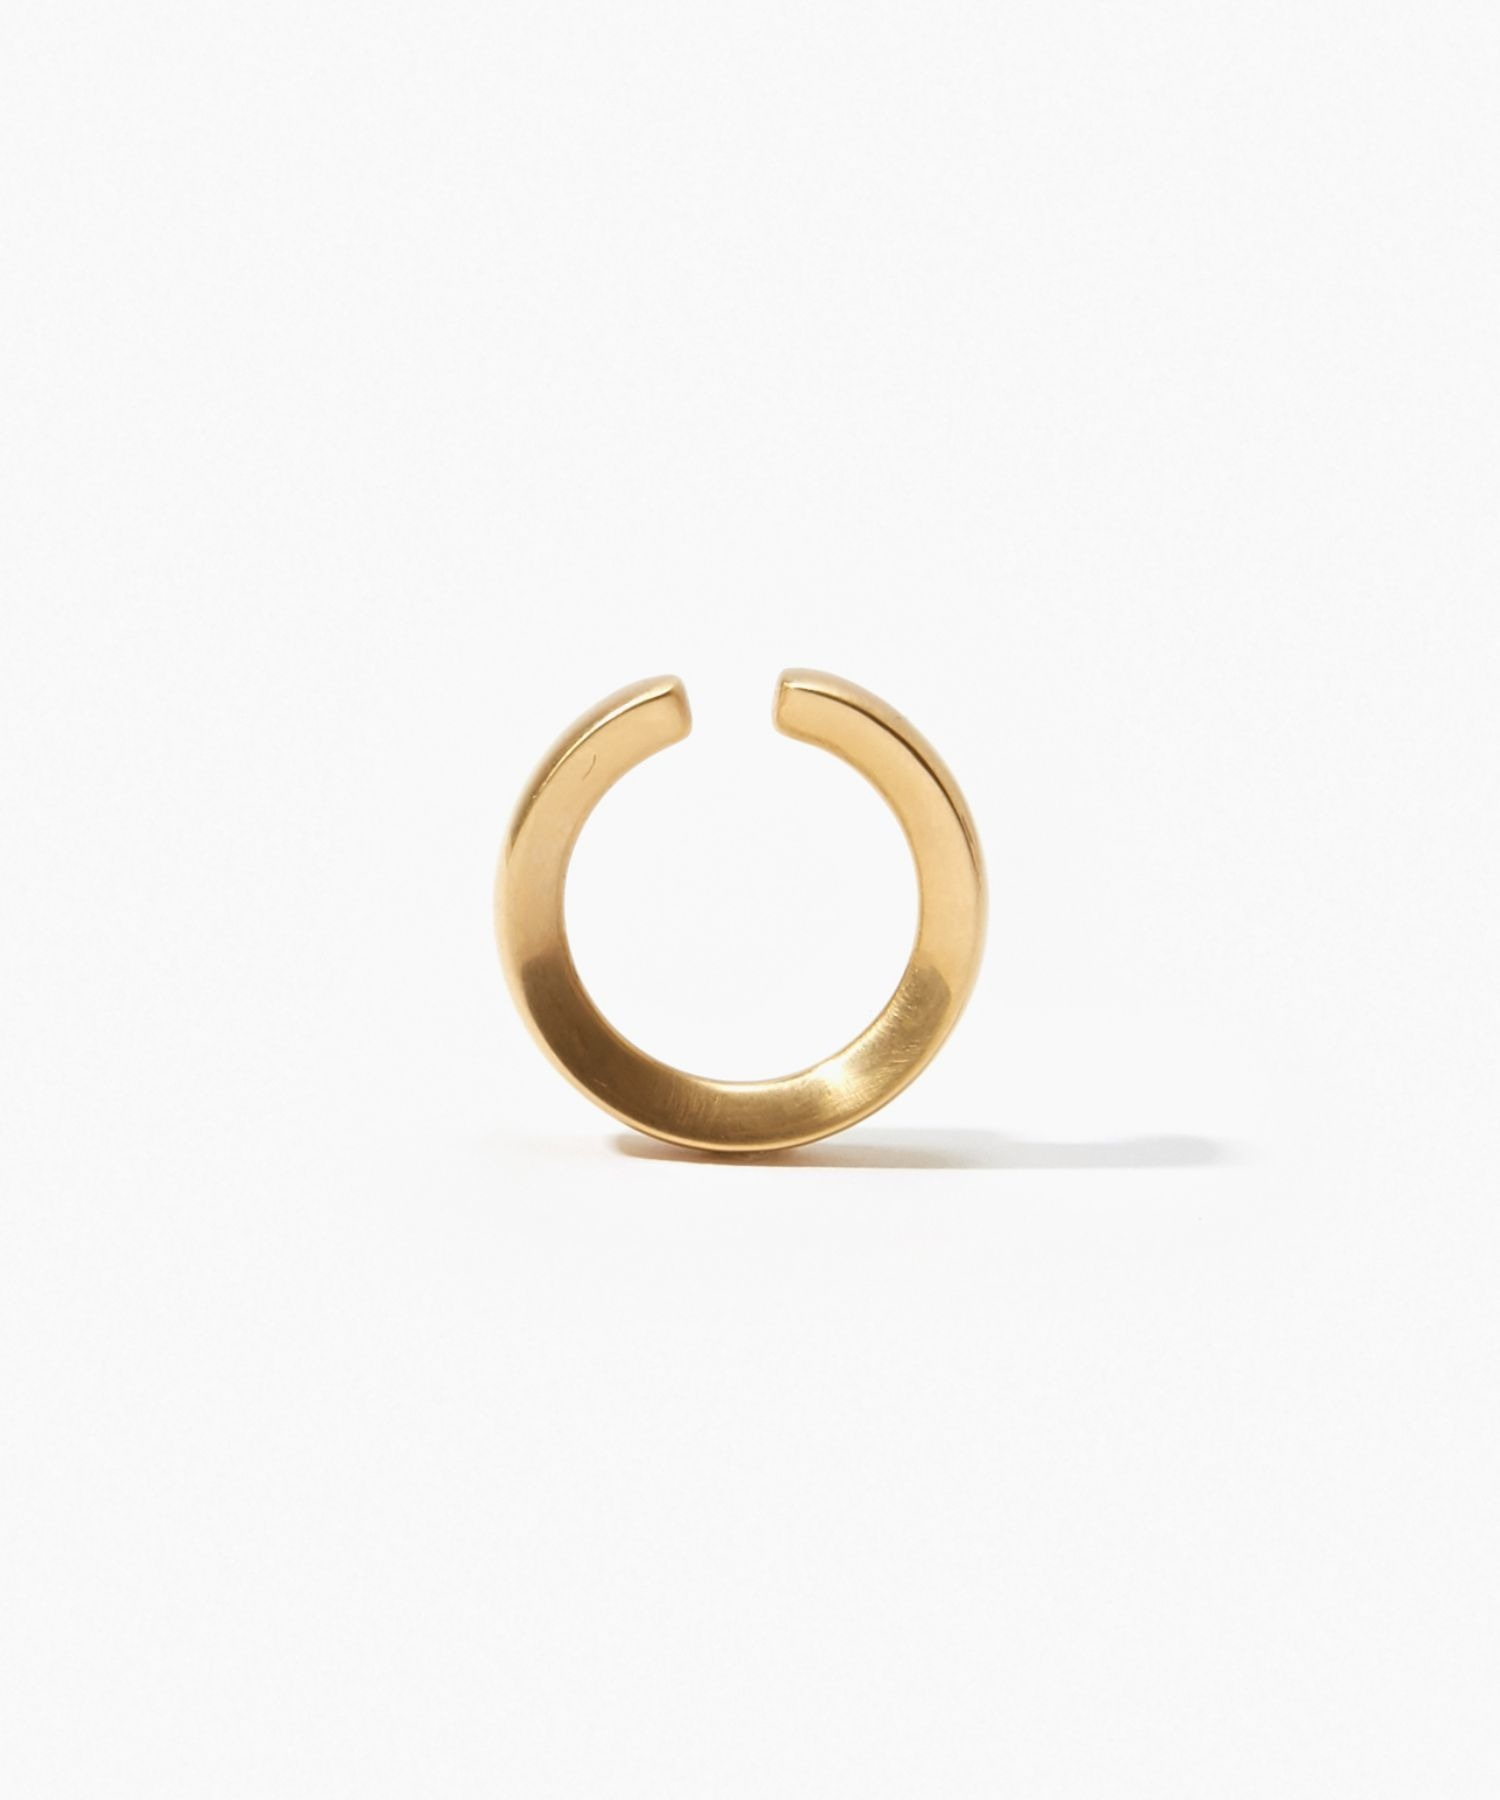 [bone] organic mat ear cuff